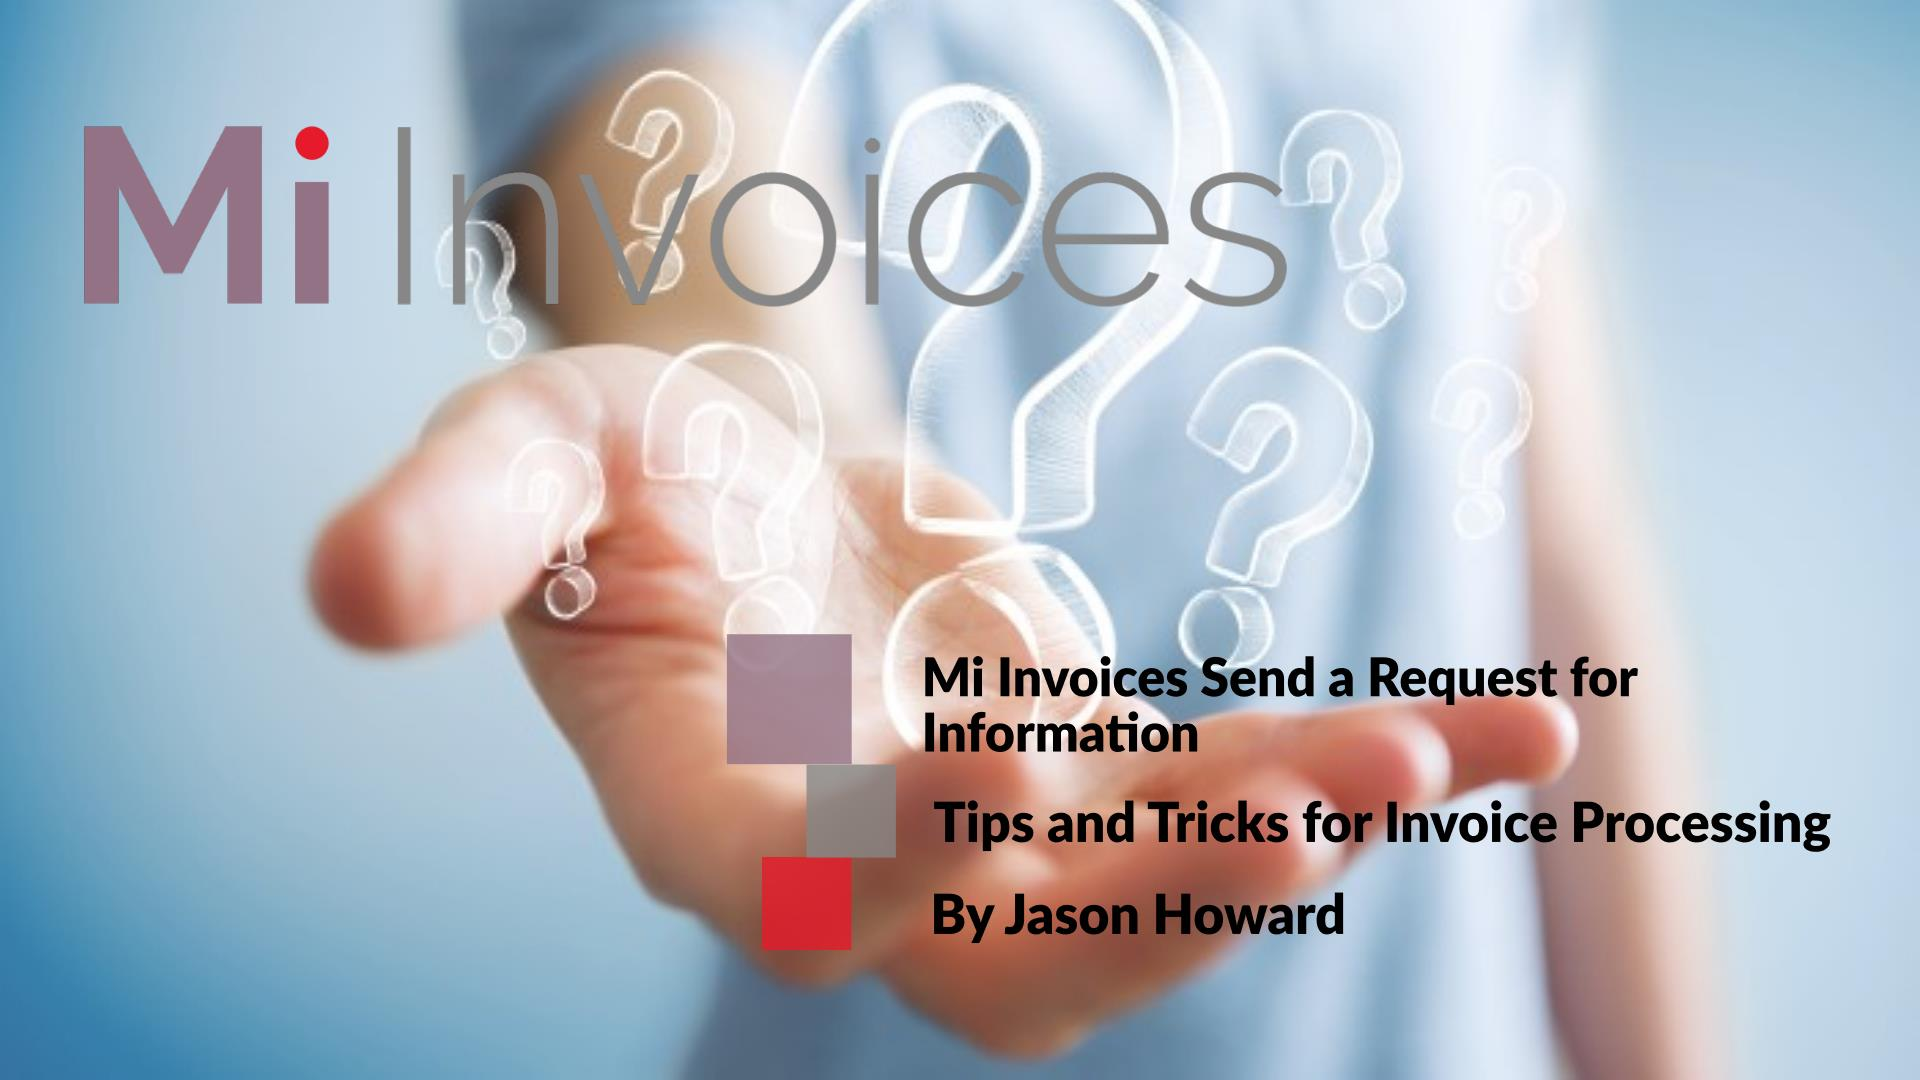 Mi Invoices Send a Request for Information